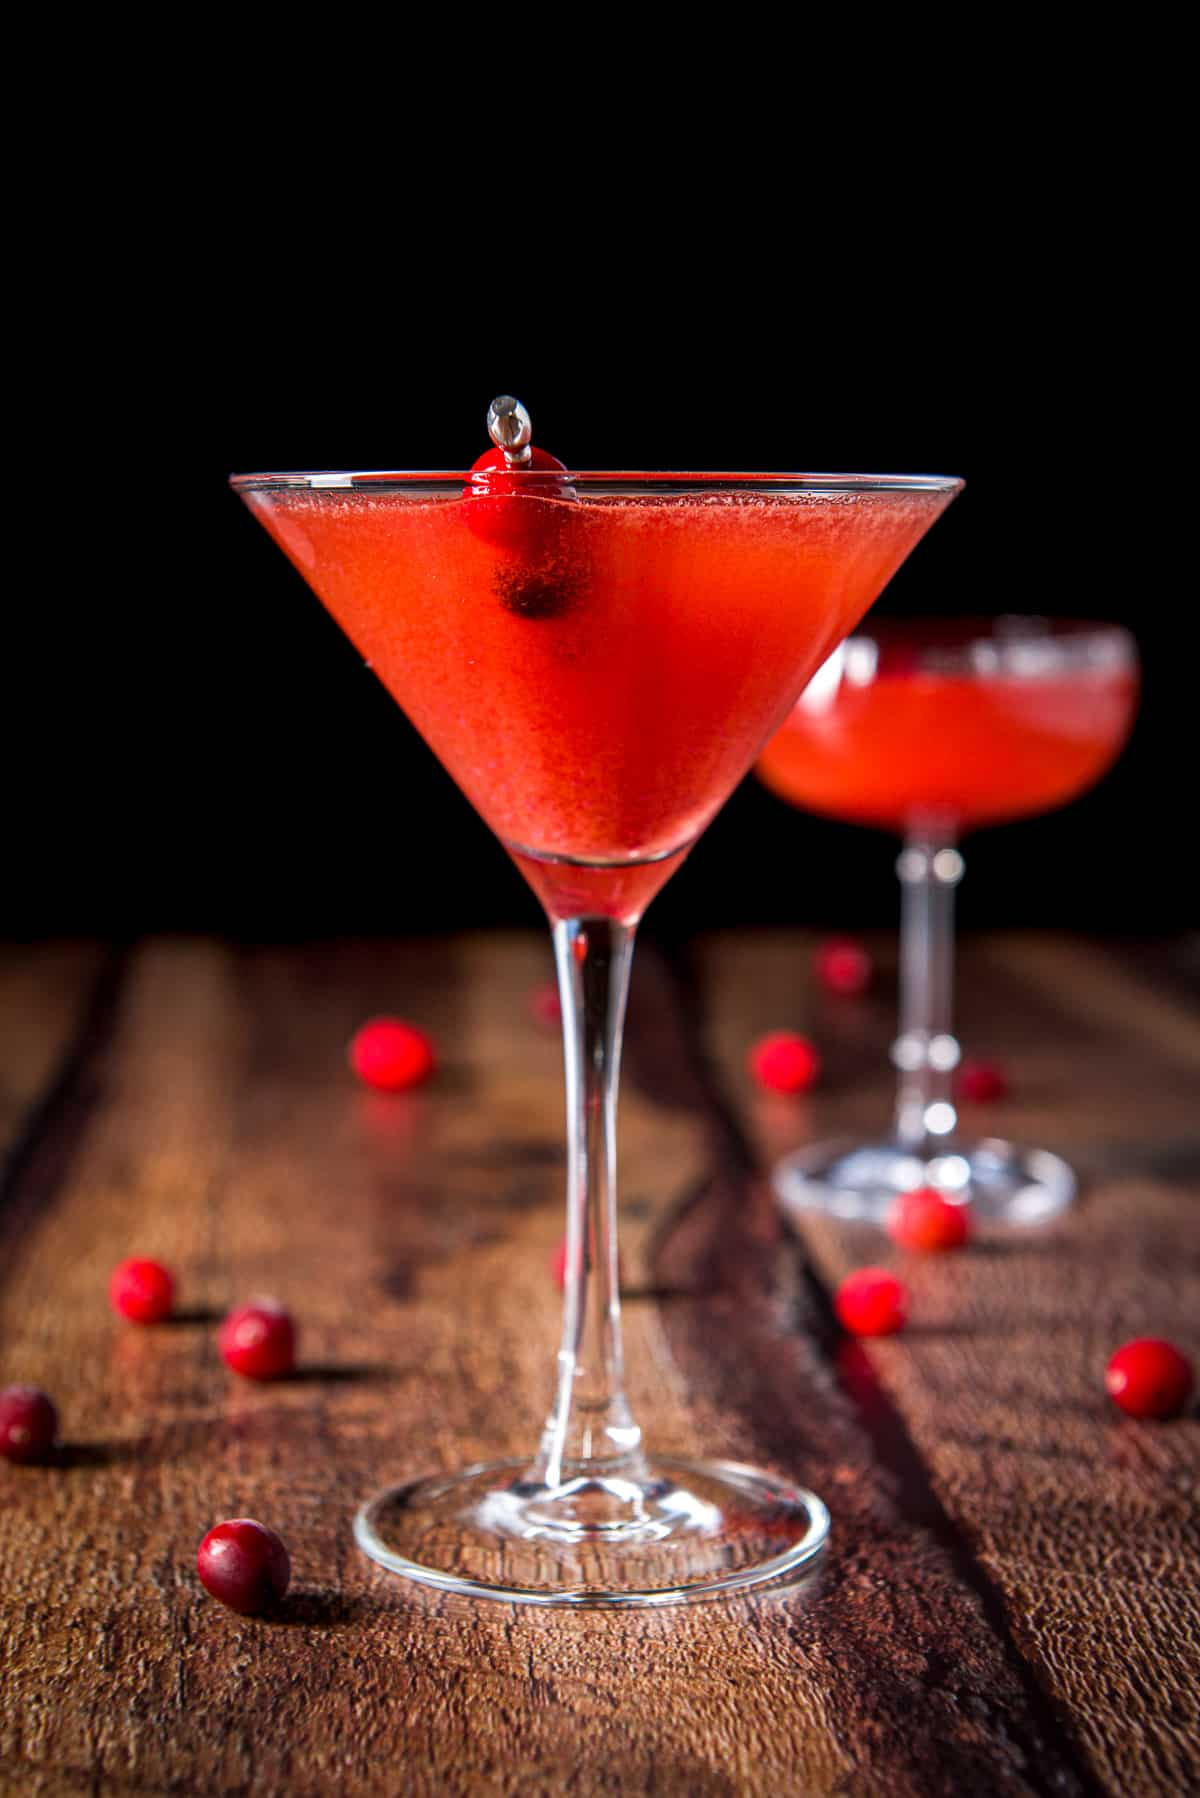 Classic martini glass with the red cocktail in it along with cranberries on a pick